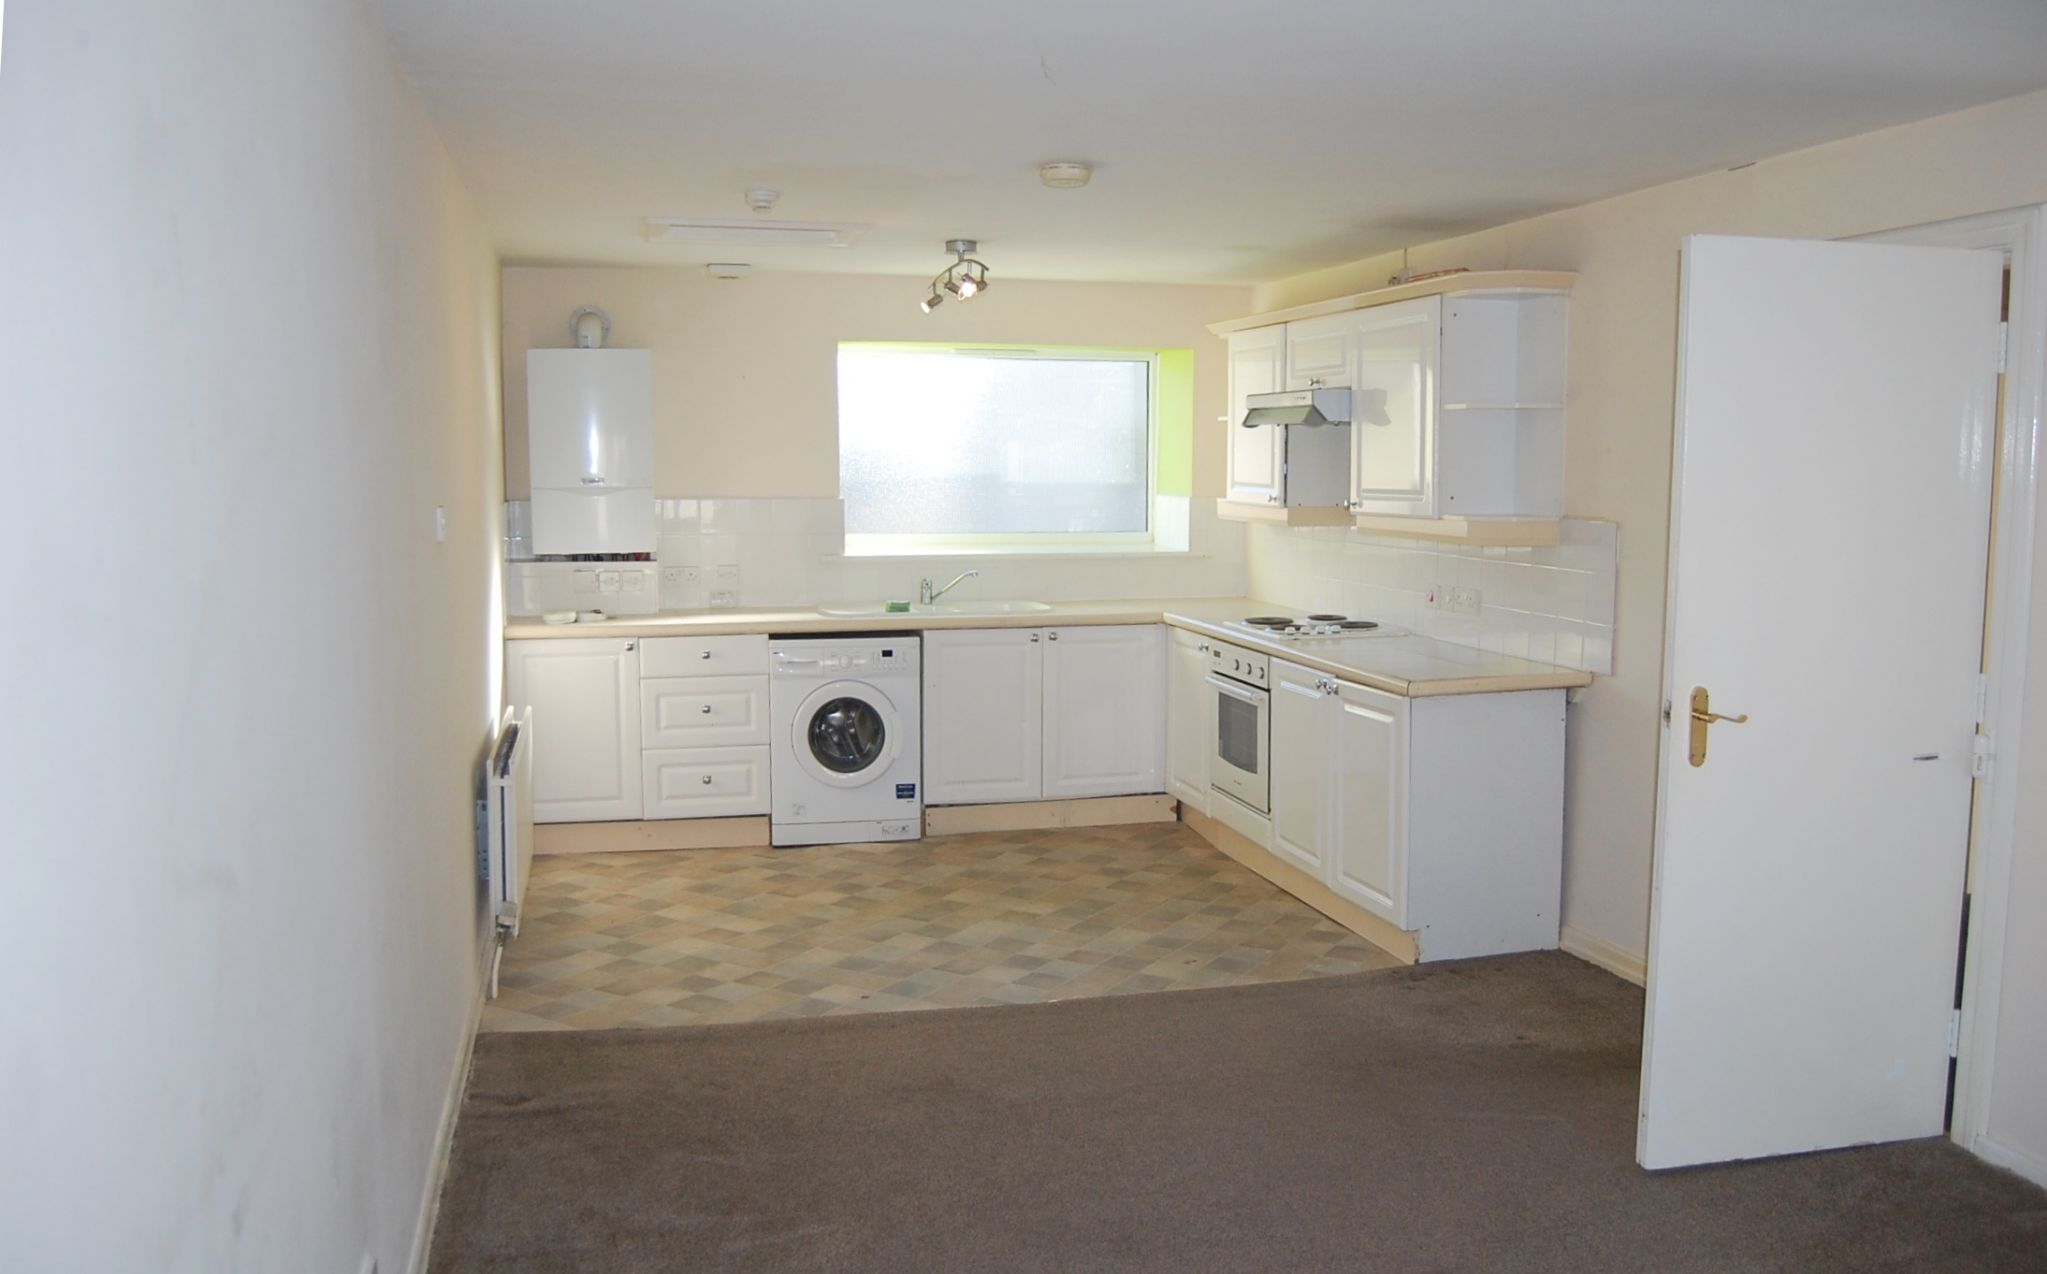 8 bedroom flat flat/apartment For Sale in Laxey - Property photograph